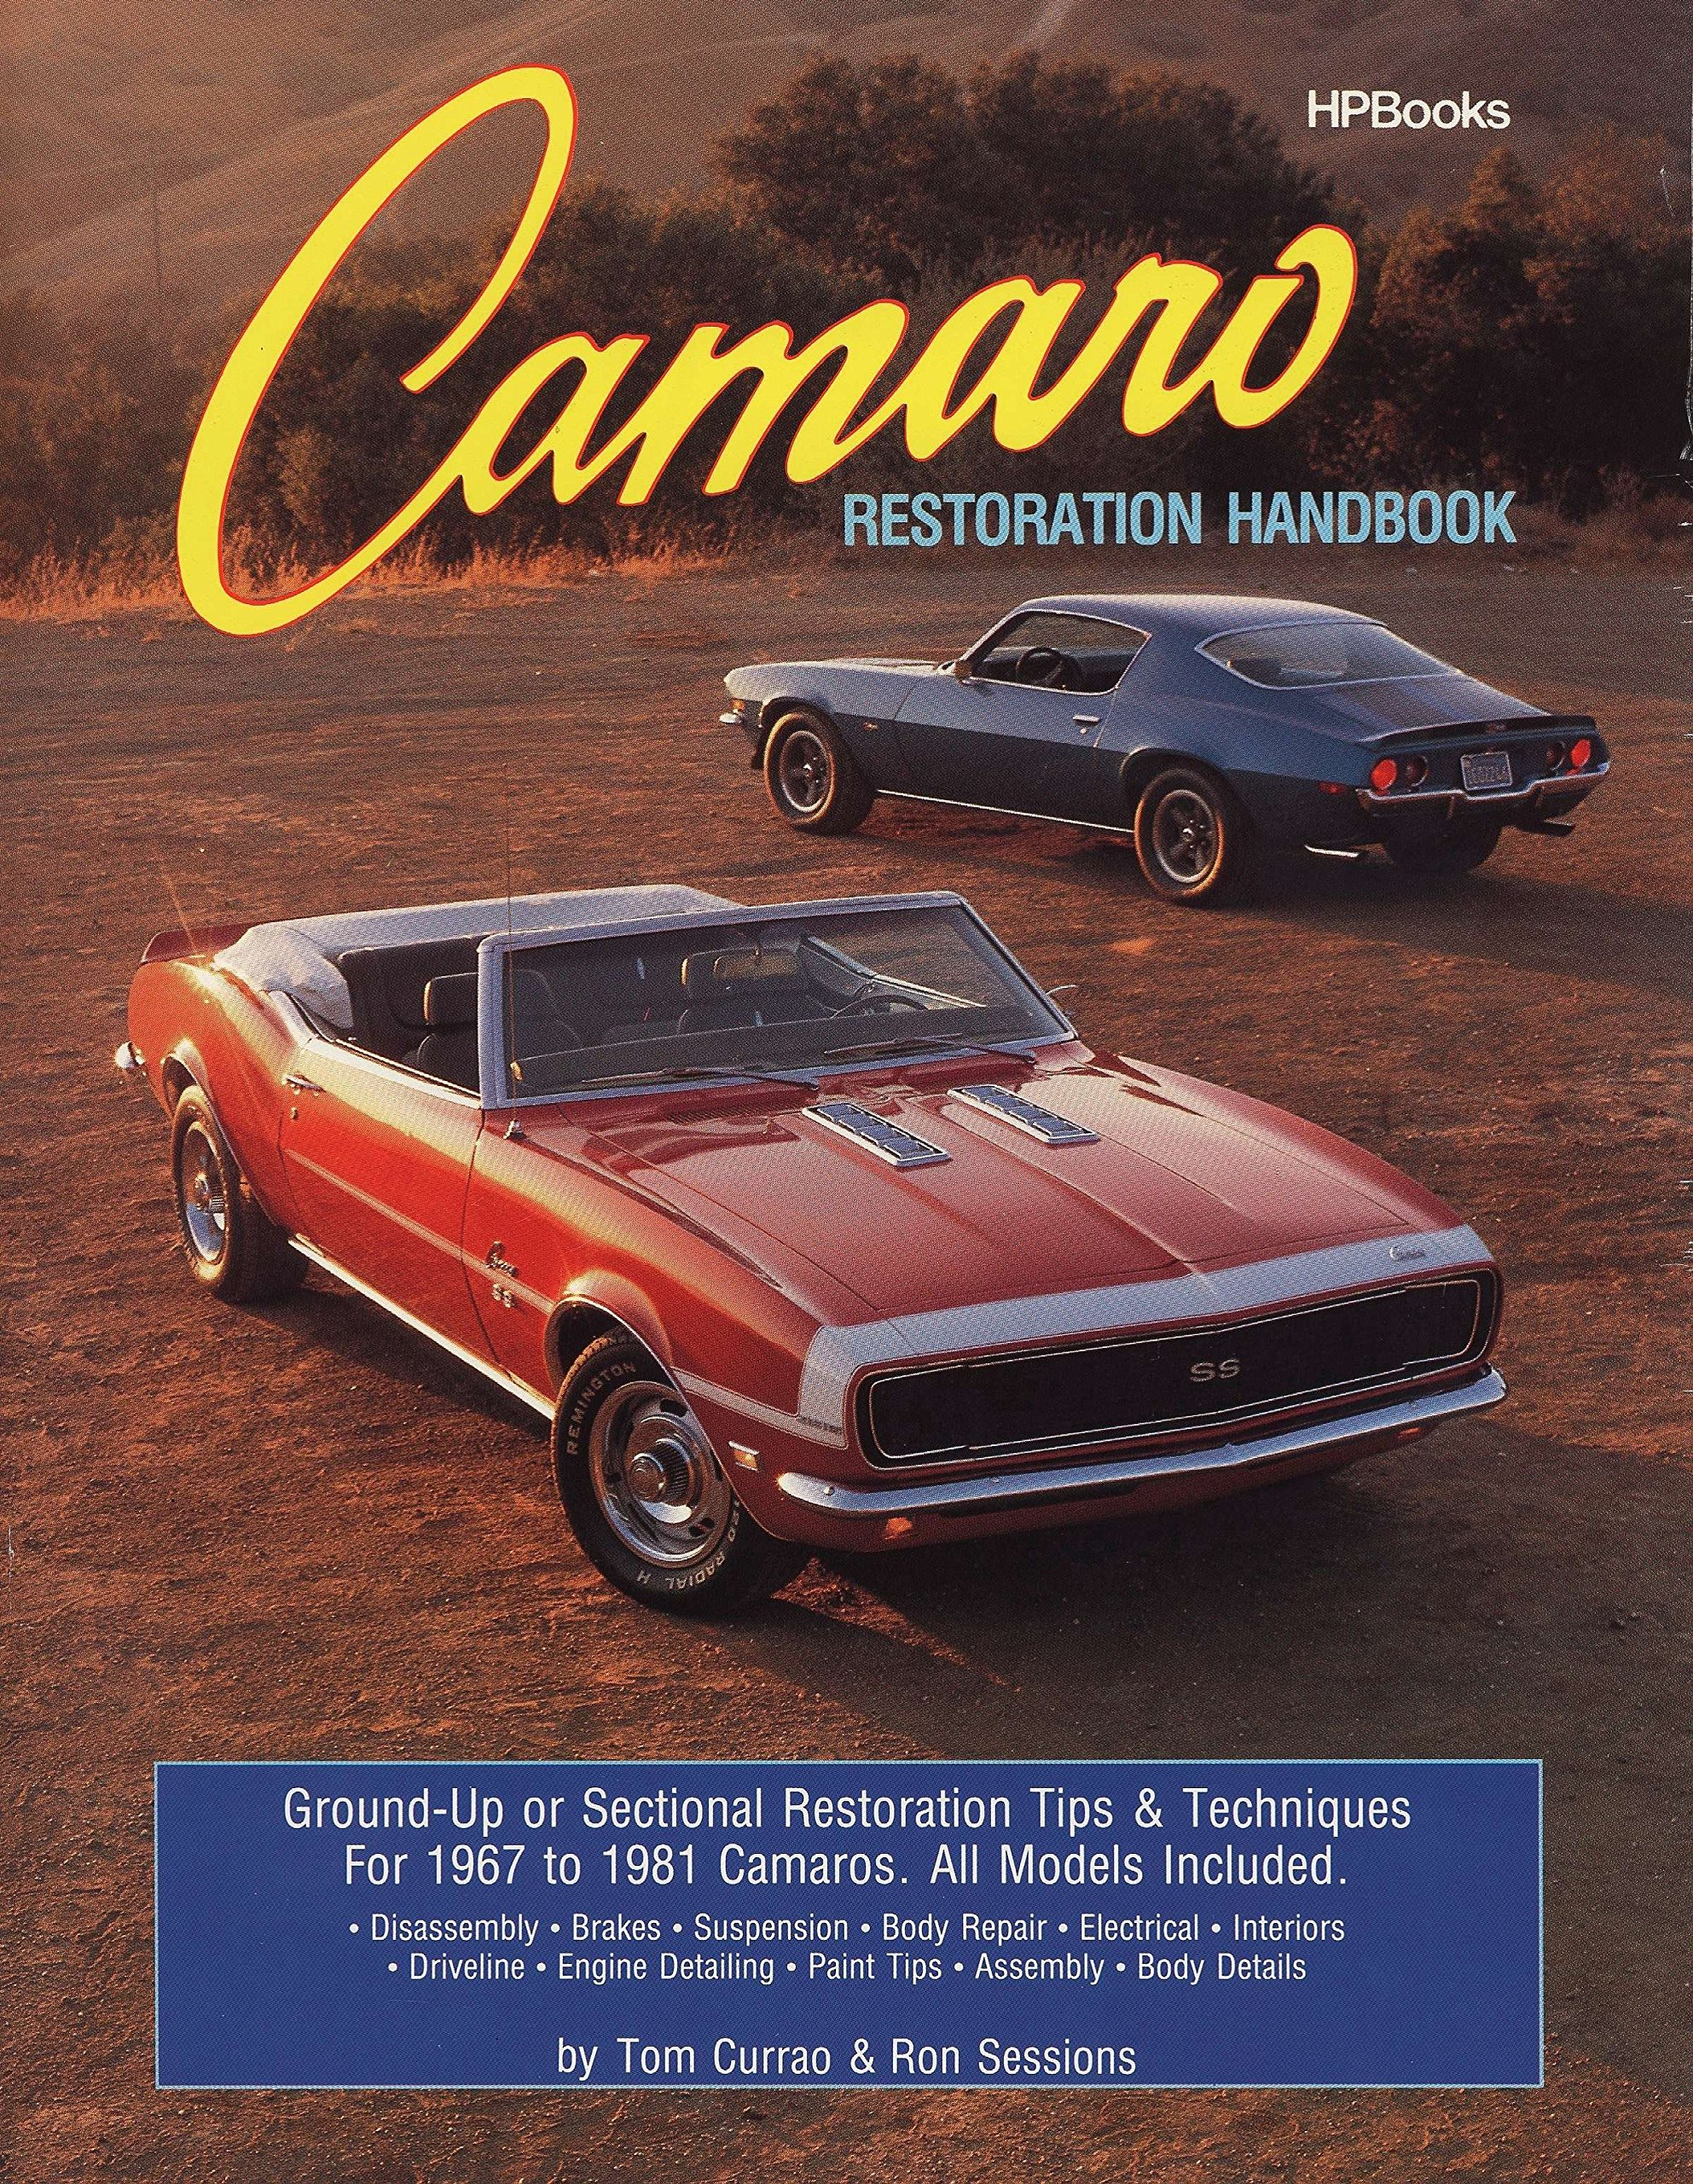 Camaro Restoration Handbook HPBooks 758: Ron Sessions: 0075478013753:  Amazon.com: Books